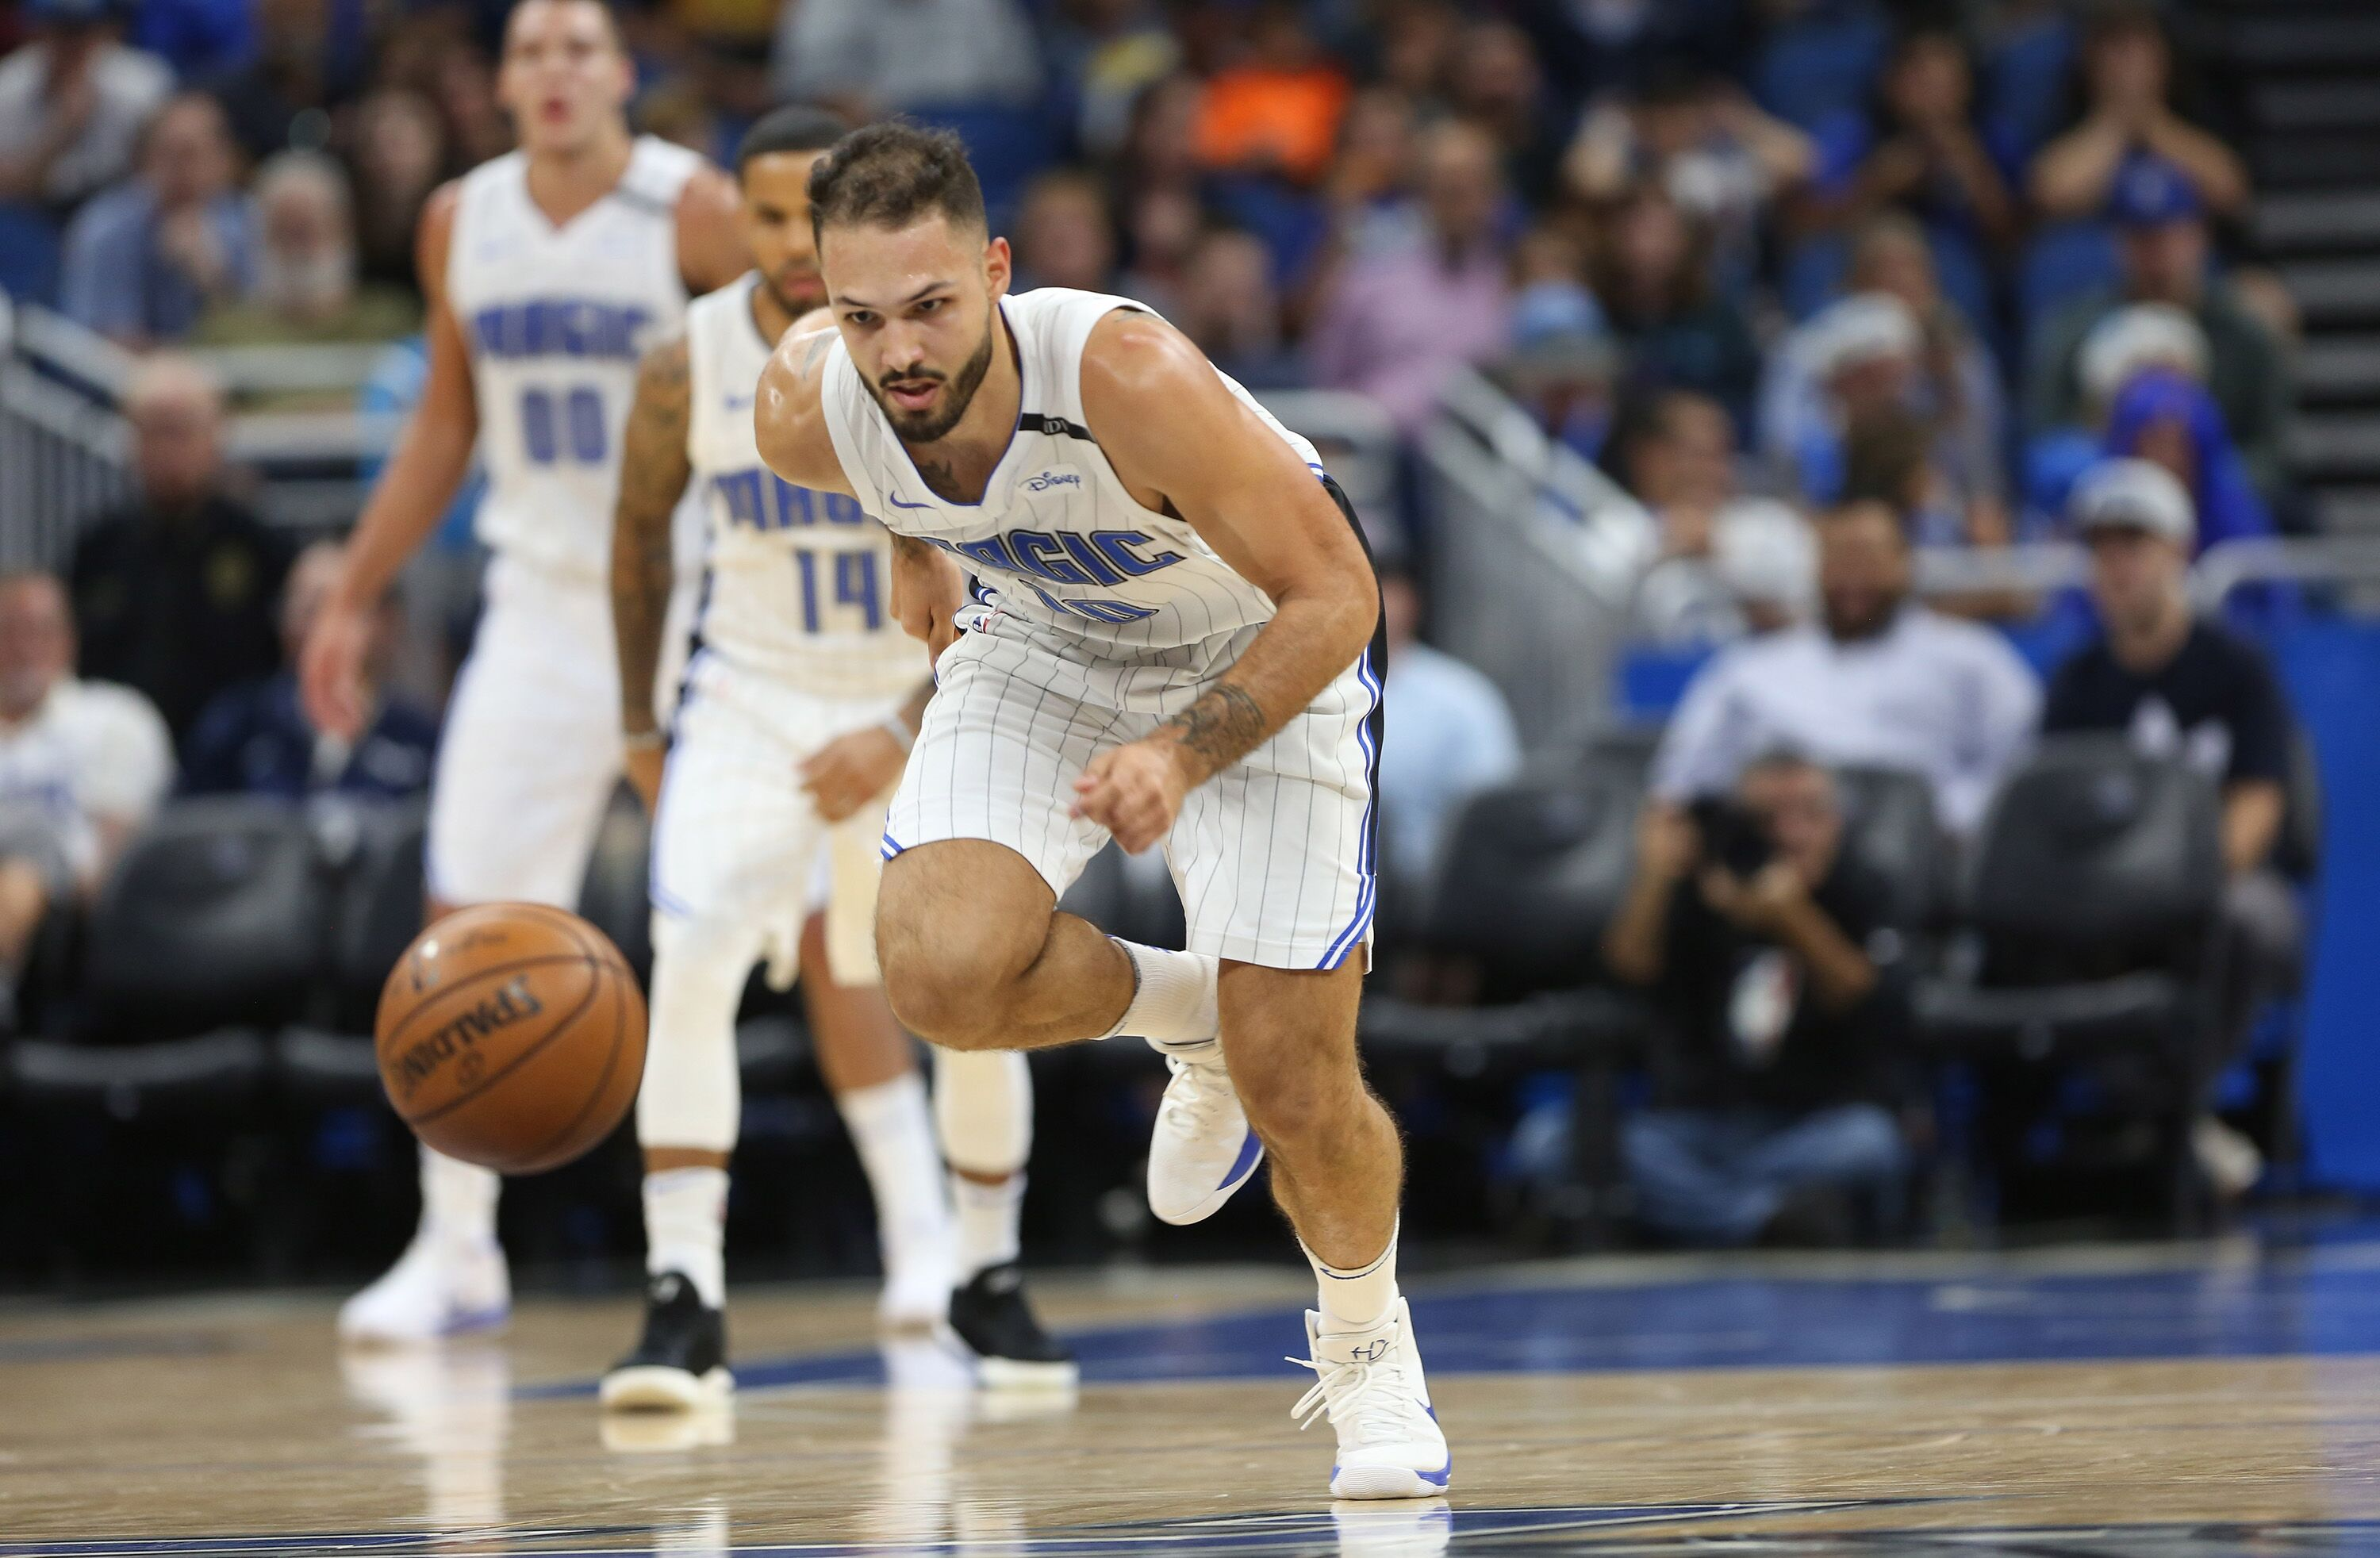 Orlando Magic forward-guard Evan Fournier (10) goes after a runaway ball --  The Orlando Magic hots the Atlanta Hawks at Amway Center, on Wednesday, December 6, 2017. With 8:00 left on the second quarter, the Magic were ahead, 35-29.(Ricardo Ramirez Buxeda/Orlando Sentinel/TNS)The Orlando Magic hots the Atlanta Hawks at Amway Center, on Wednesday, December 6, 2017. With 8:00 left on the second quarter, the Magic were ahead, 35-29.(Ricardo Ramirez Buxeda/Orlando Sentinel/TNS via Getty Images)